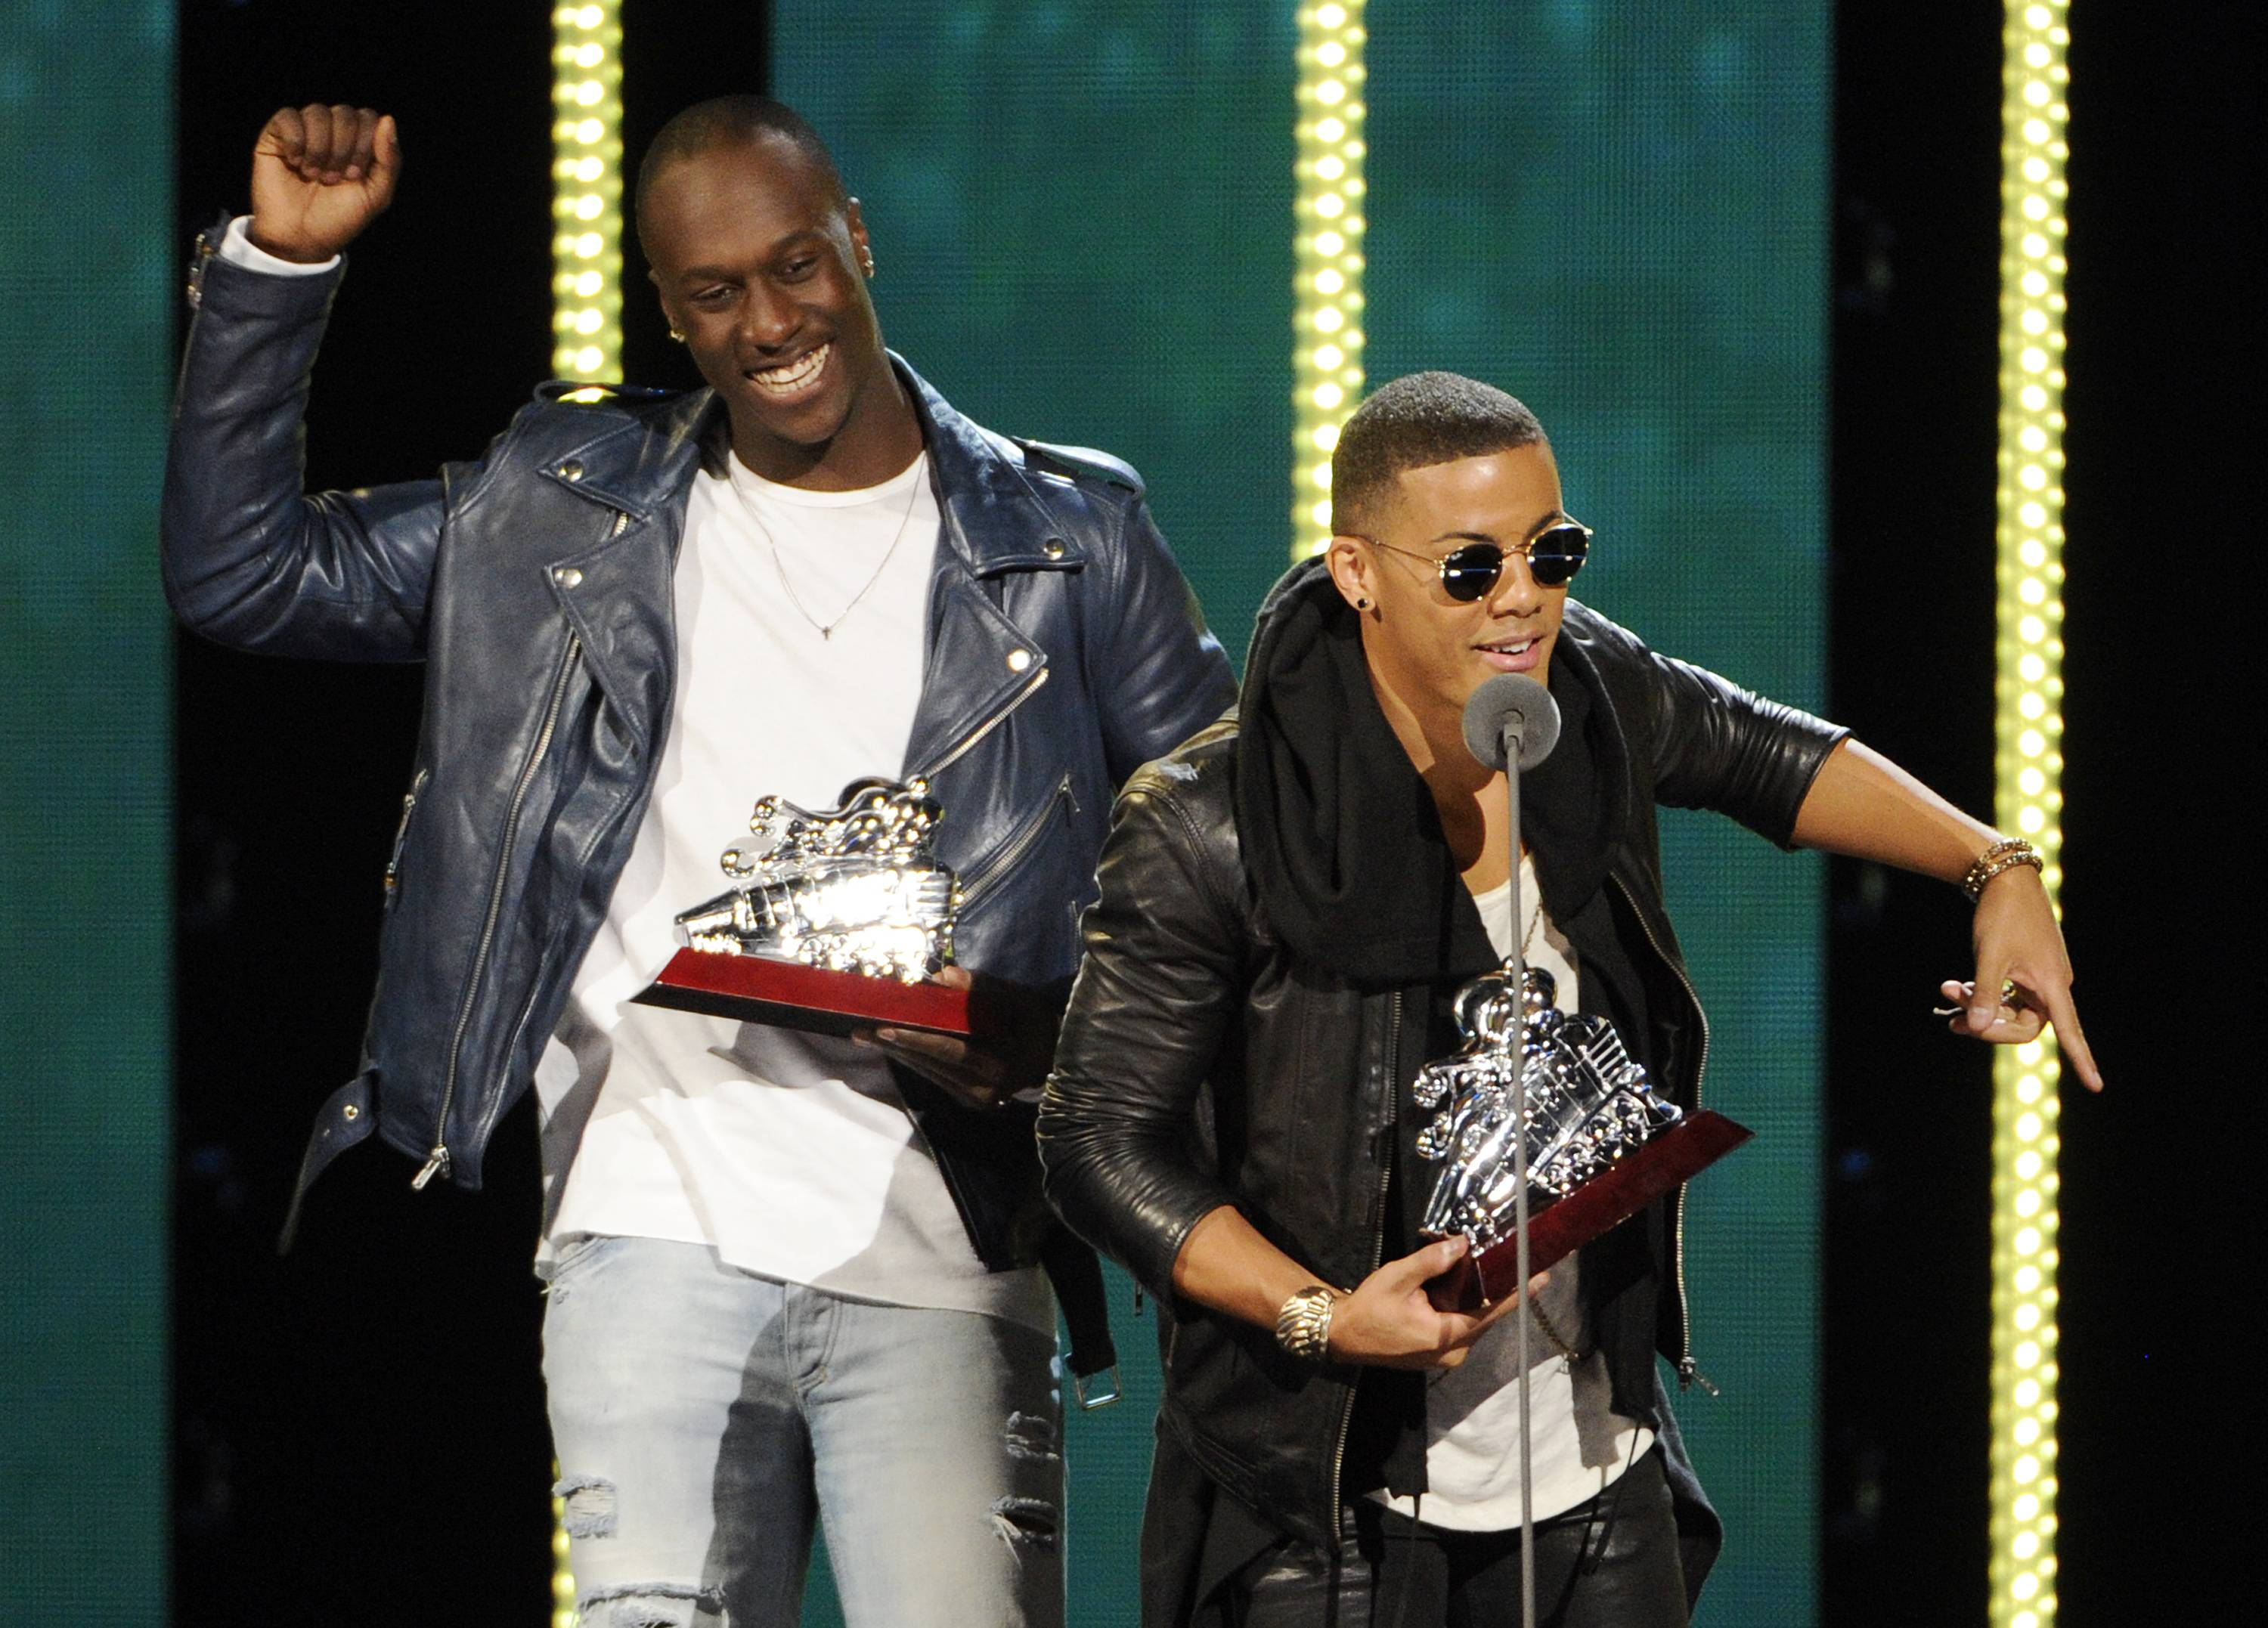 Norwegian singing-songwriting duo Nico, right, and Vinz accept the Best New Artist award during the 2014 Soul Train Awards at Orleans Arena on Nov. 7 in Las Vegas.